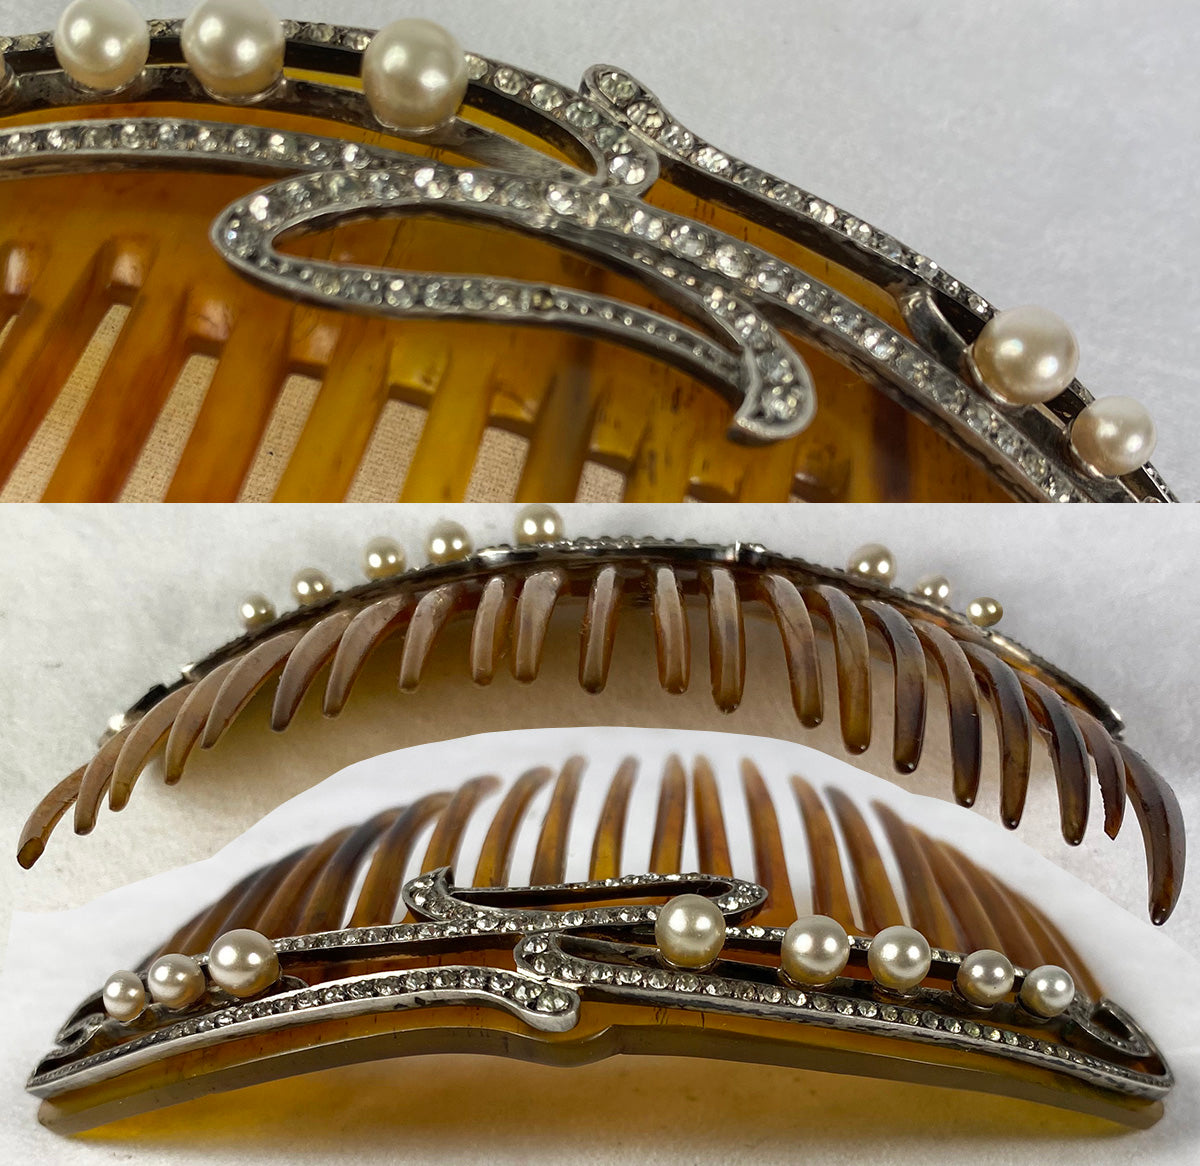 Rare Antique French Tiara Hair Comb, Diamonds and Pearls, Spectacular!